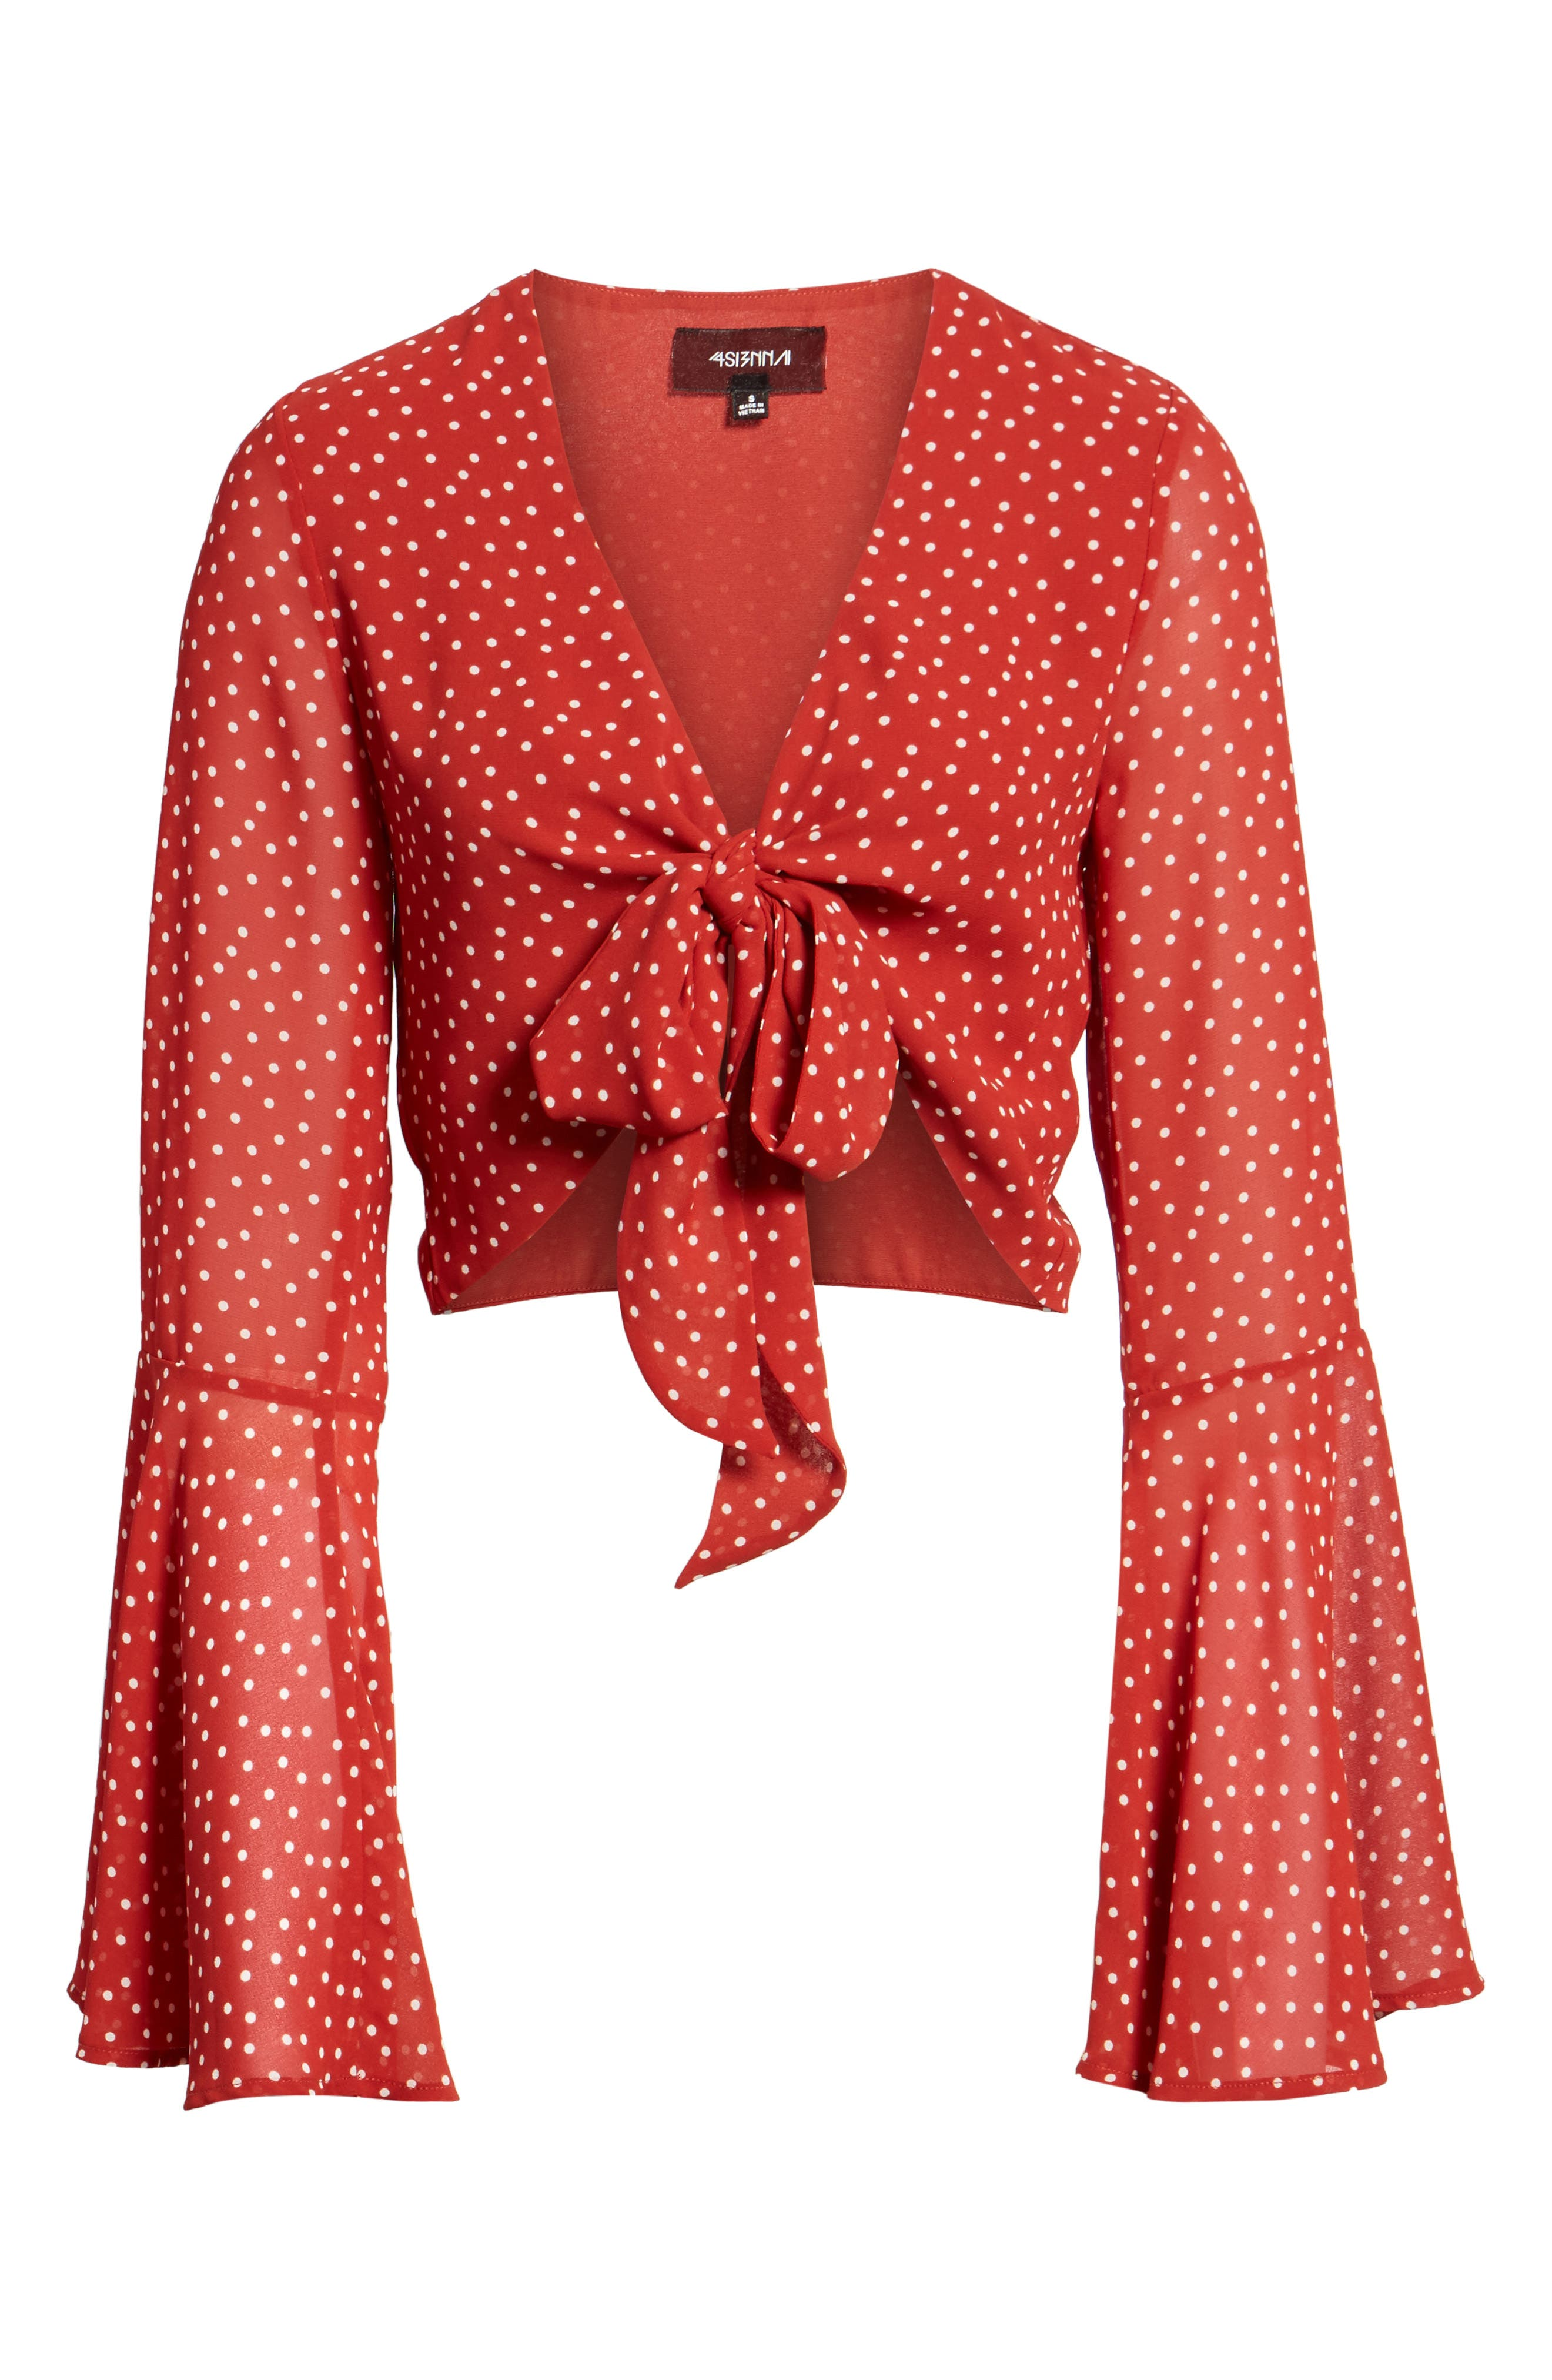 Tie Front Bell Sleeve Top,                             Alternate thumbnail 6, color,                             600